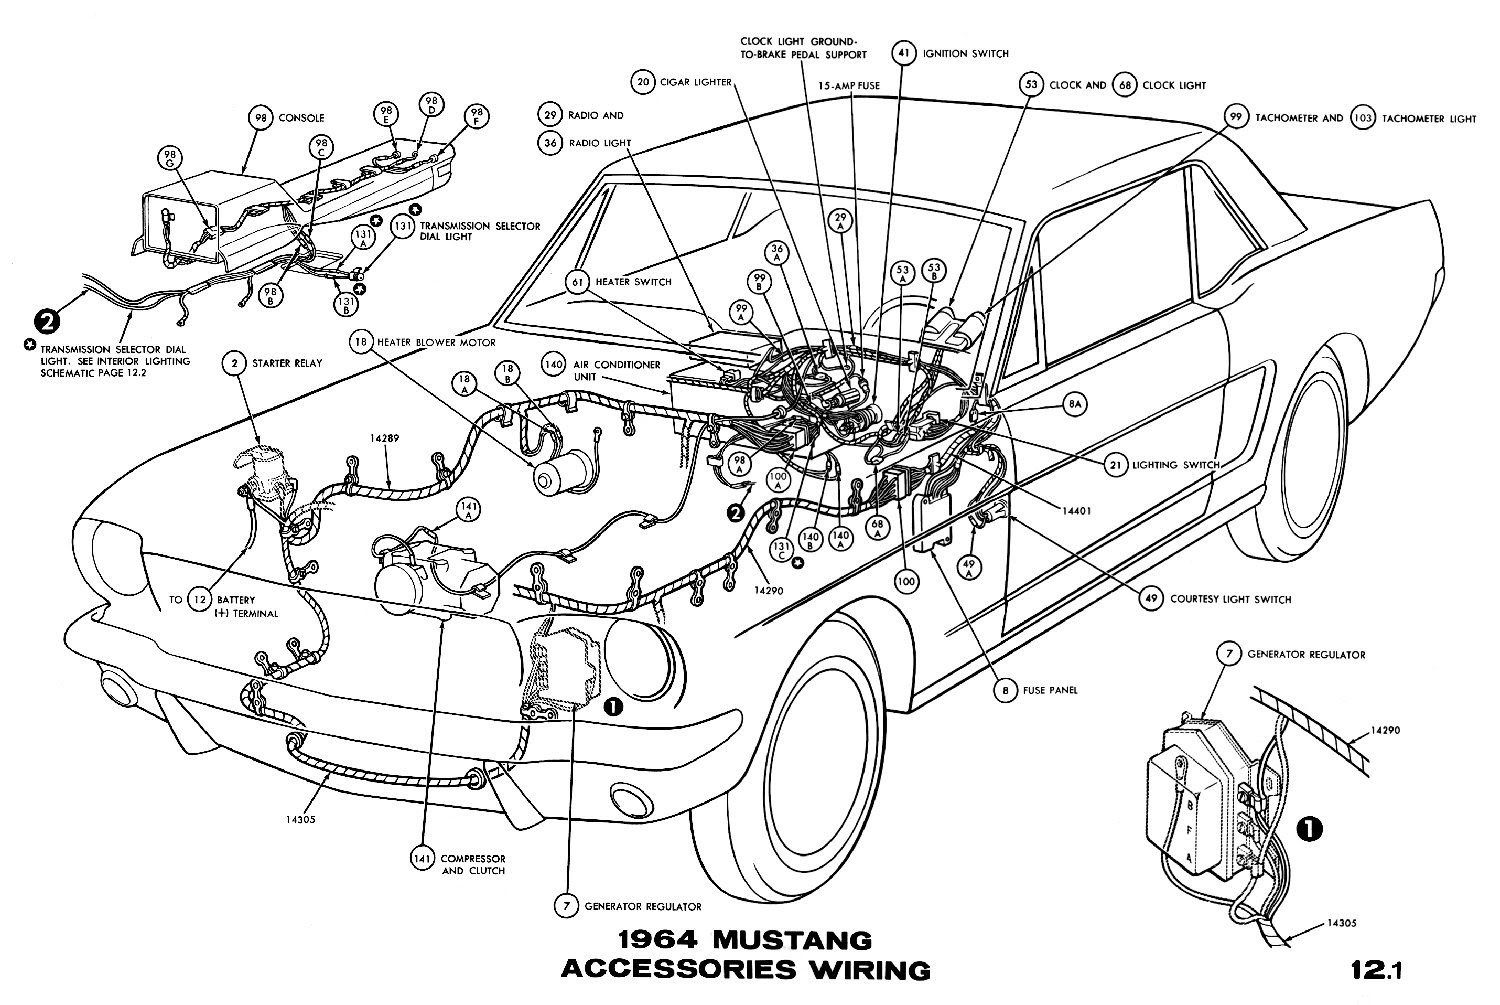 1965 Mustang Fuse Box Location - Wiring Diagram Schemas